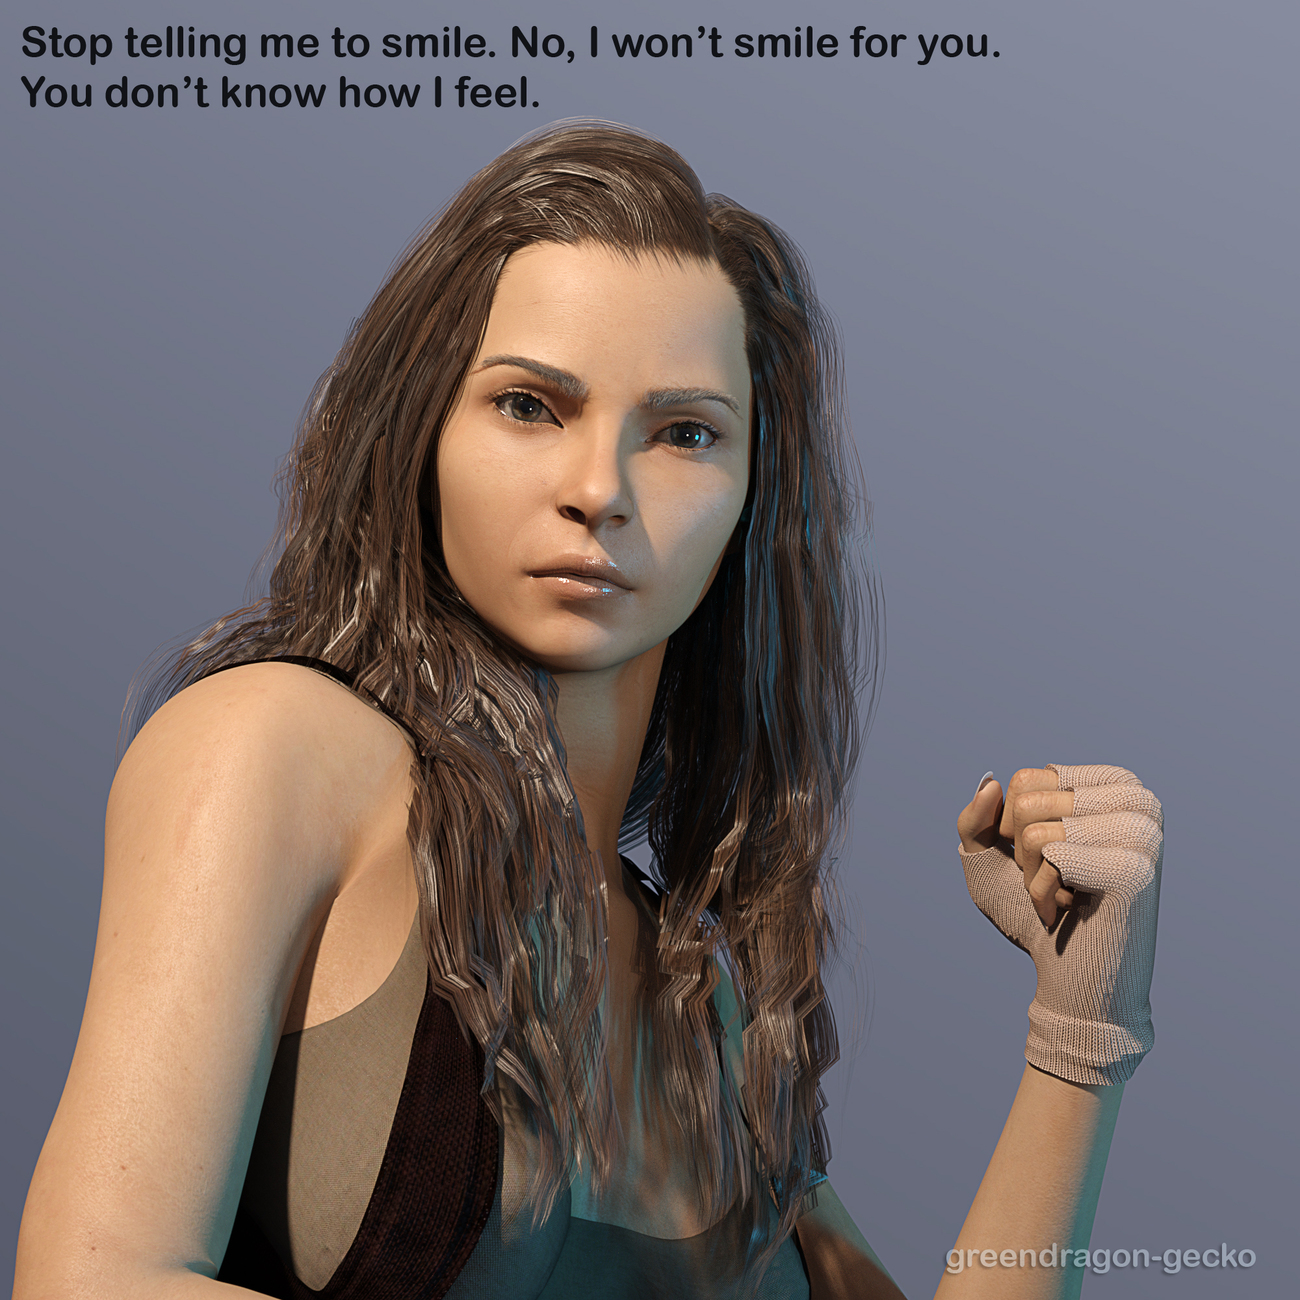 No I won't smile for you by Salerina